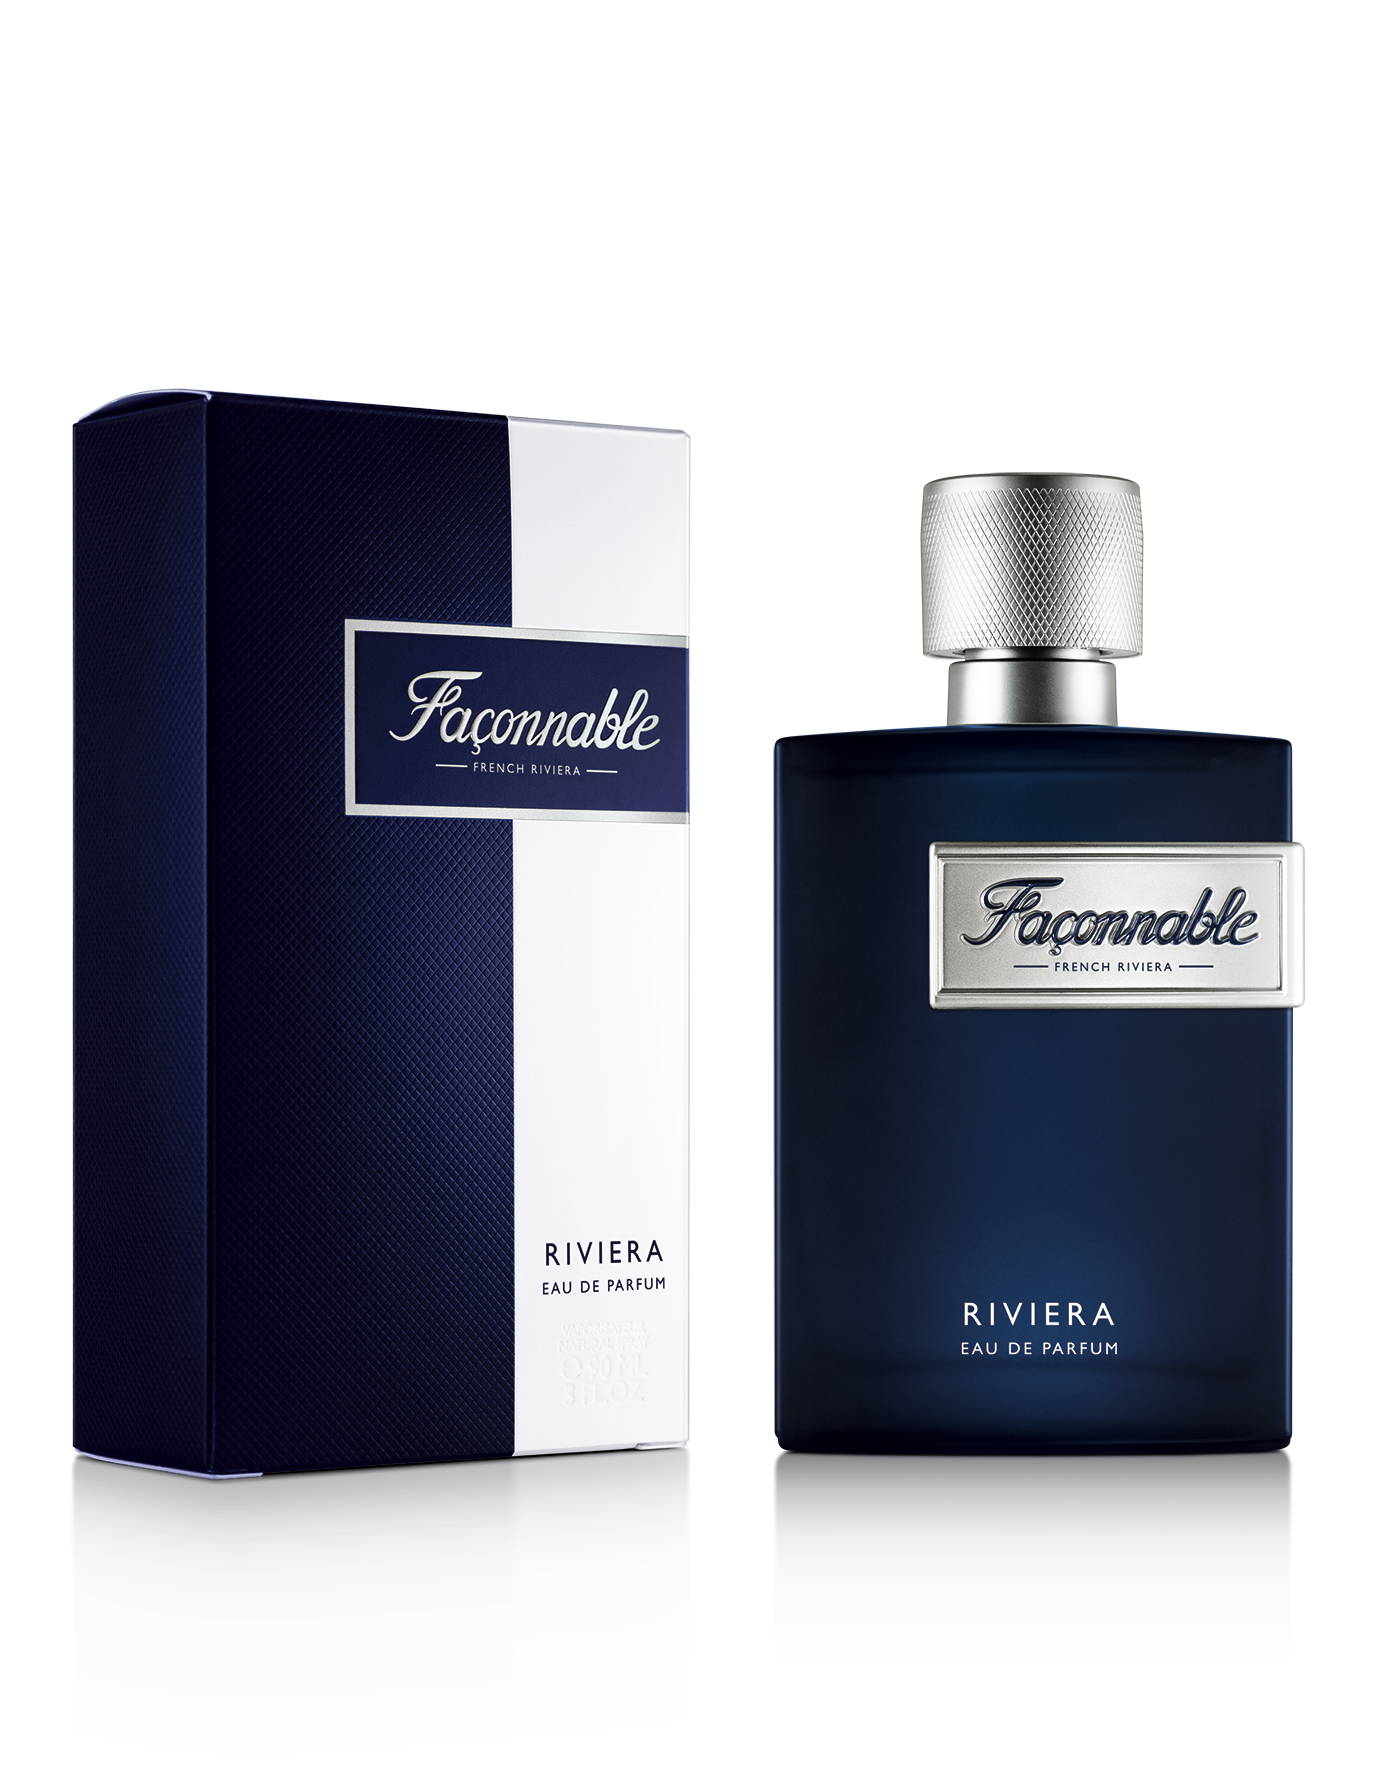 FACONNABLE RIVIERA 90 ML LEFT PROFILE PACK FACING BOTTLE